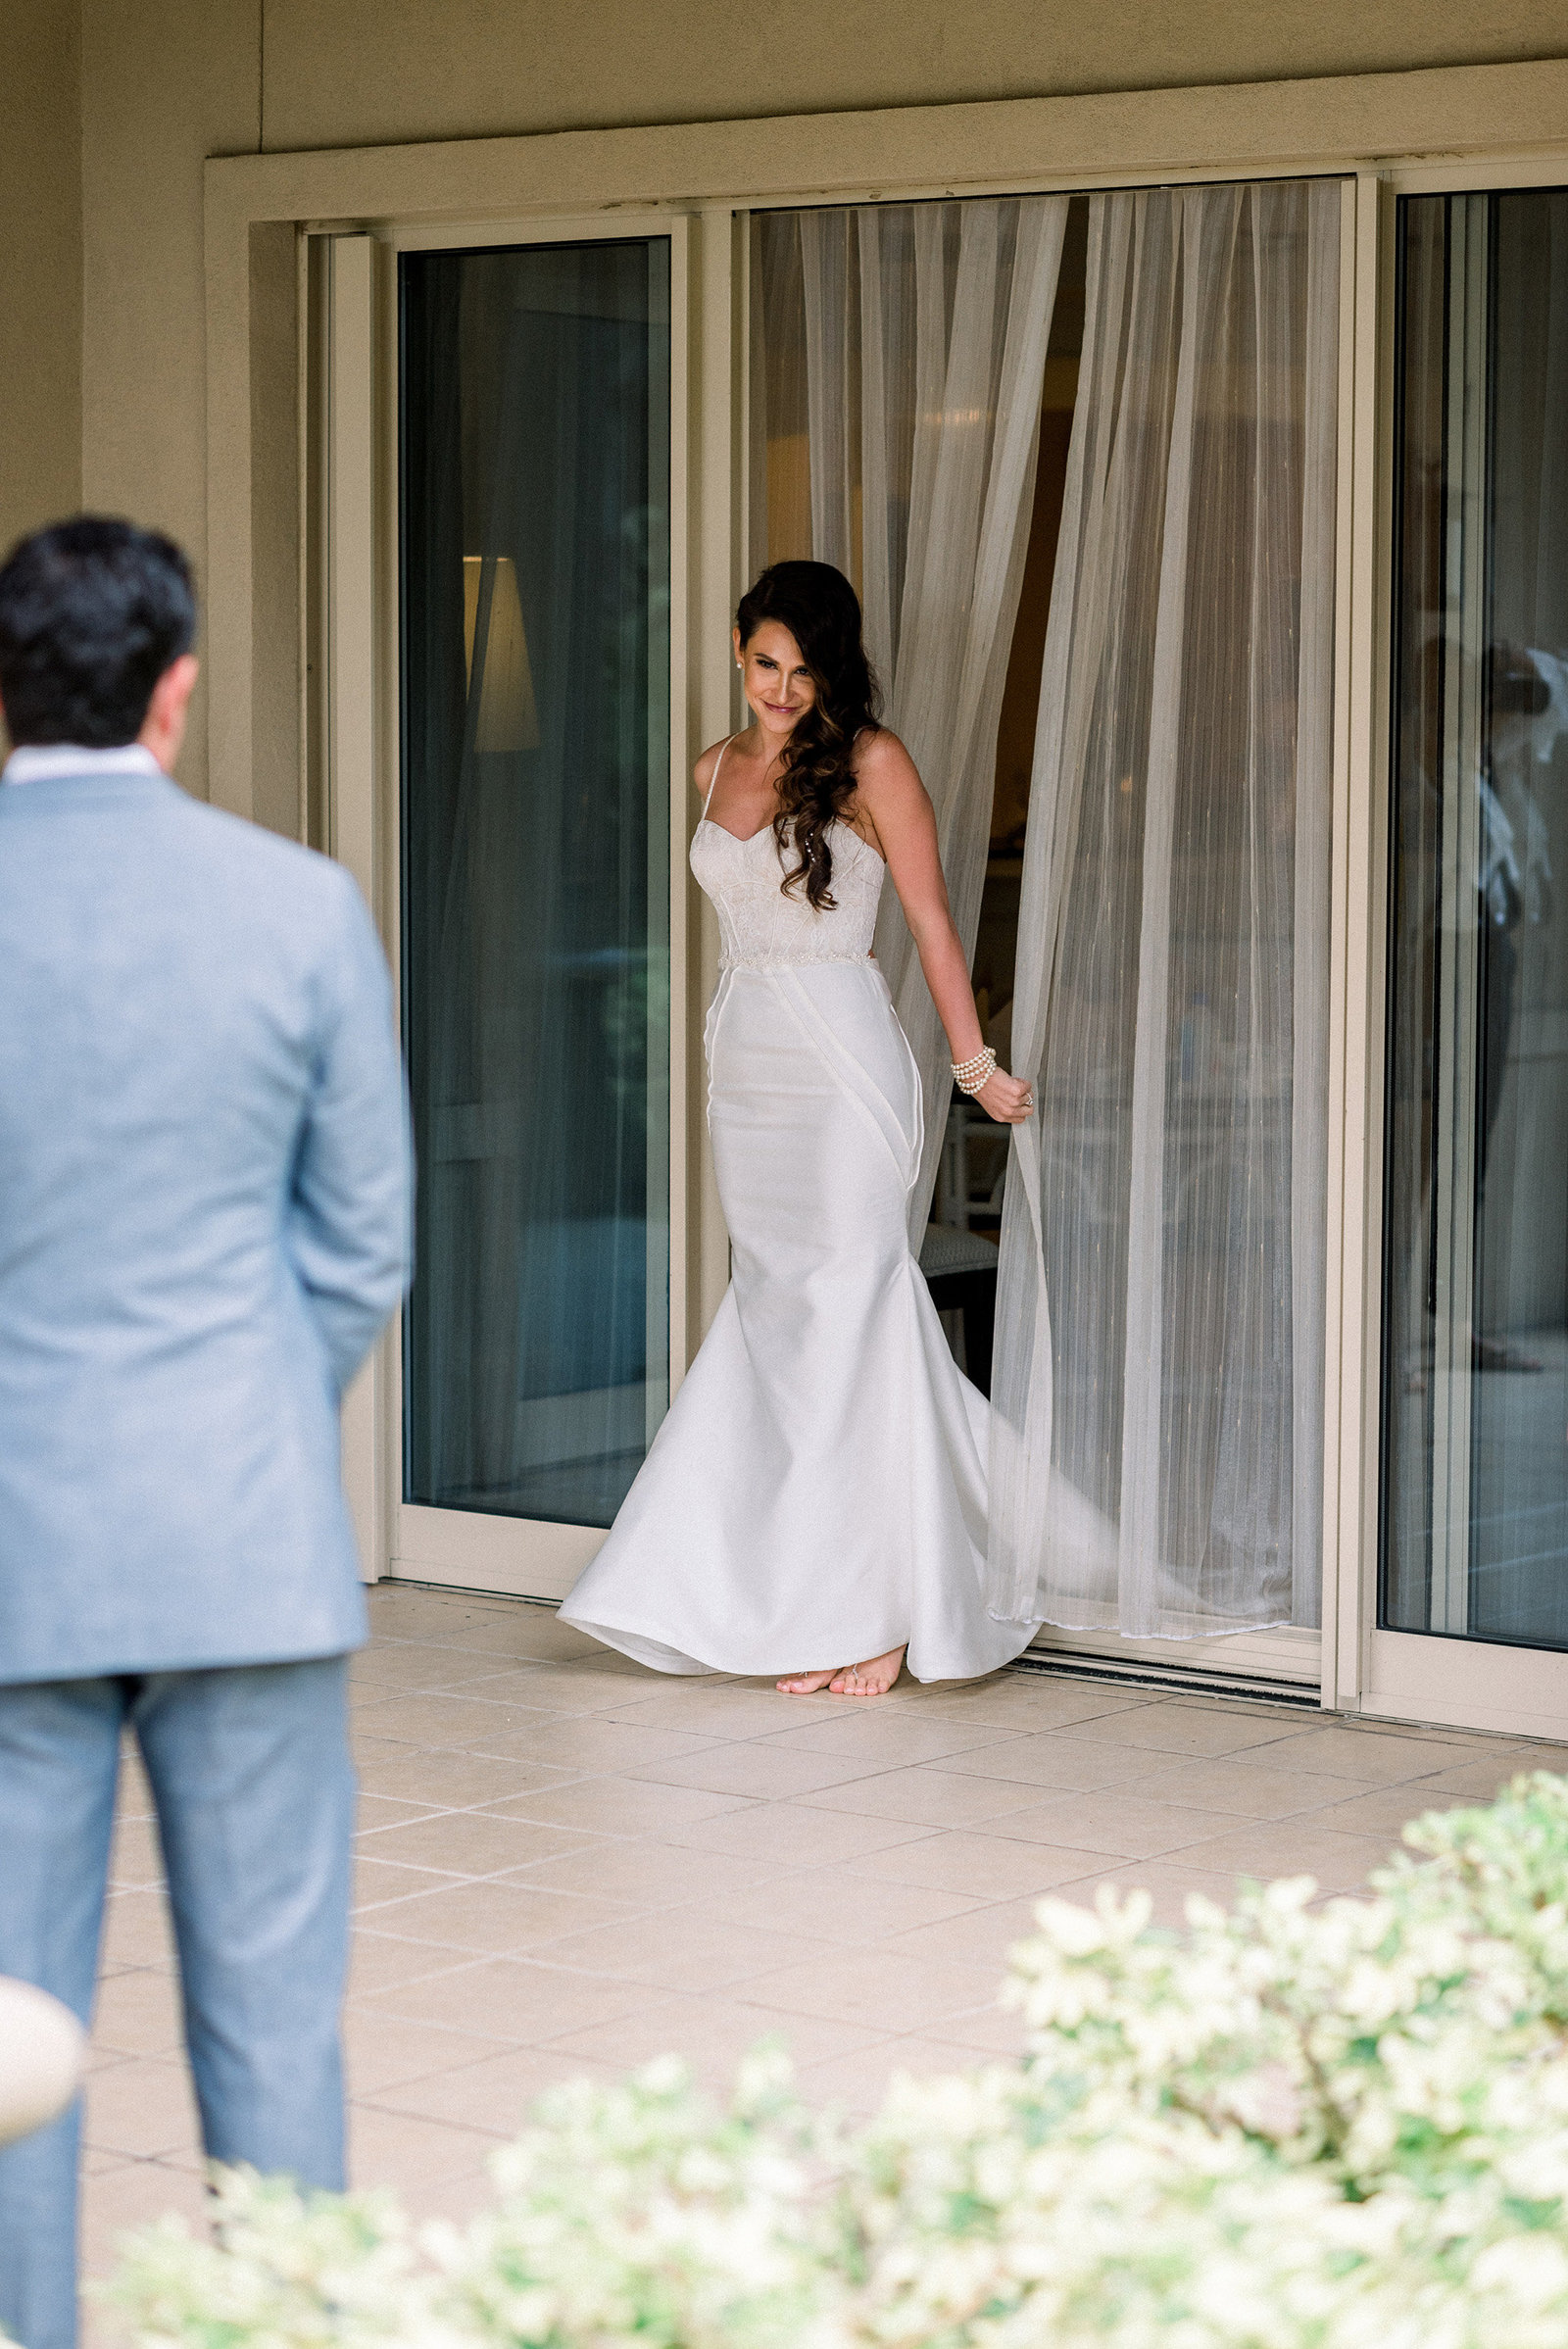 20180512-Pura-Soul-Photo-Ritz-Grand-Cayman-Wedding-32